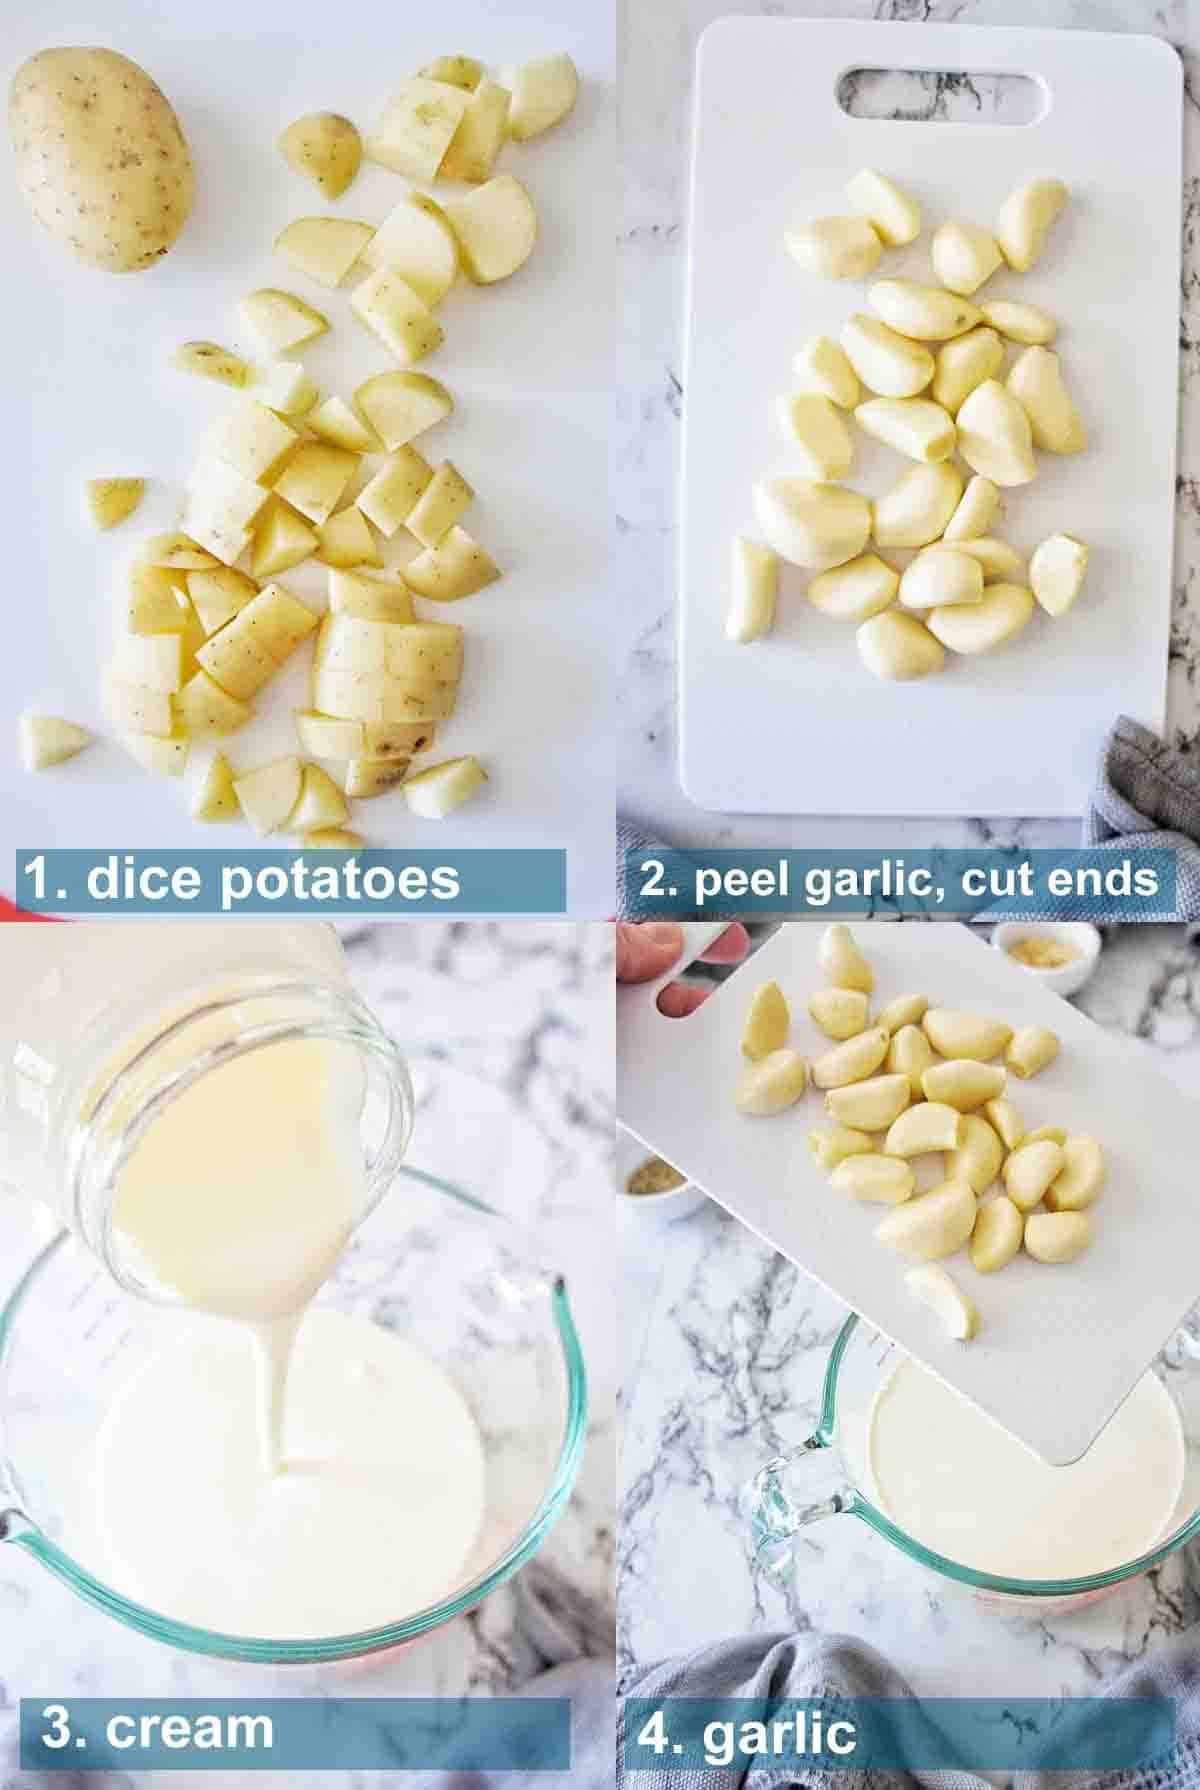 Process shots for oven roasted garlic potatoes with text overlay